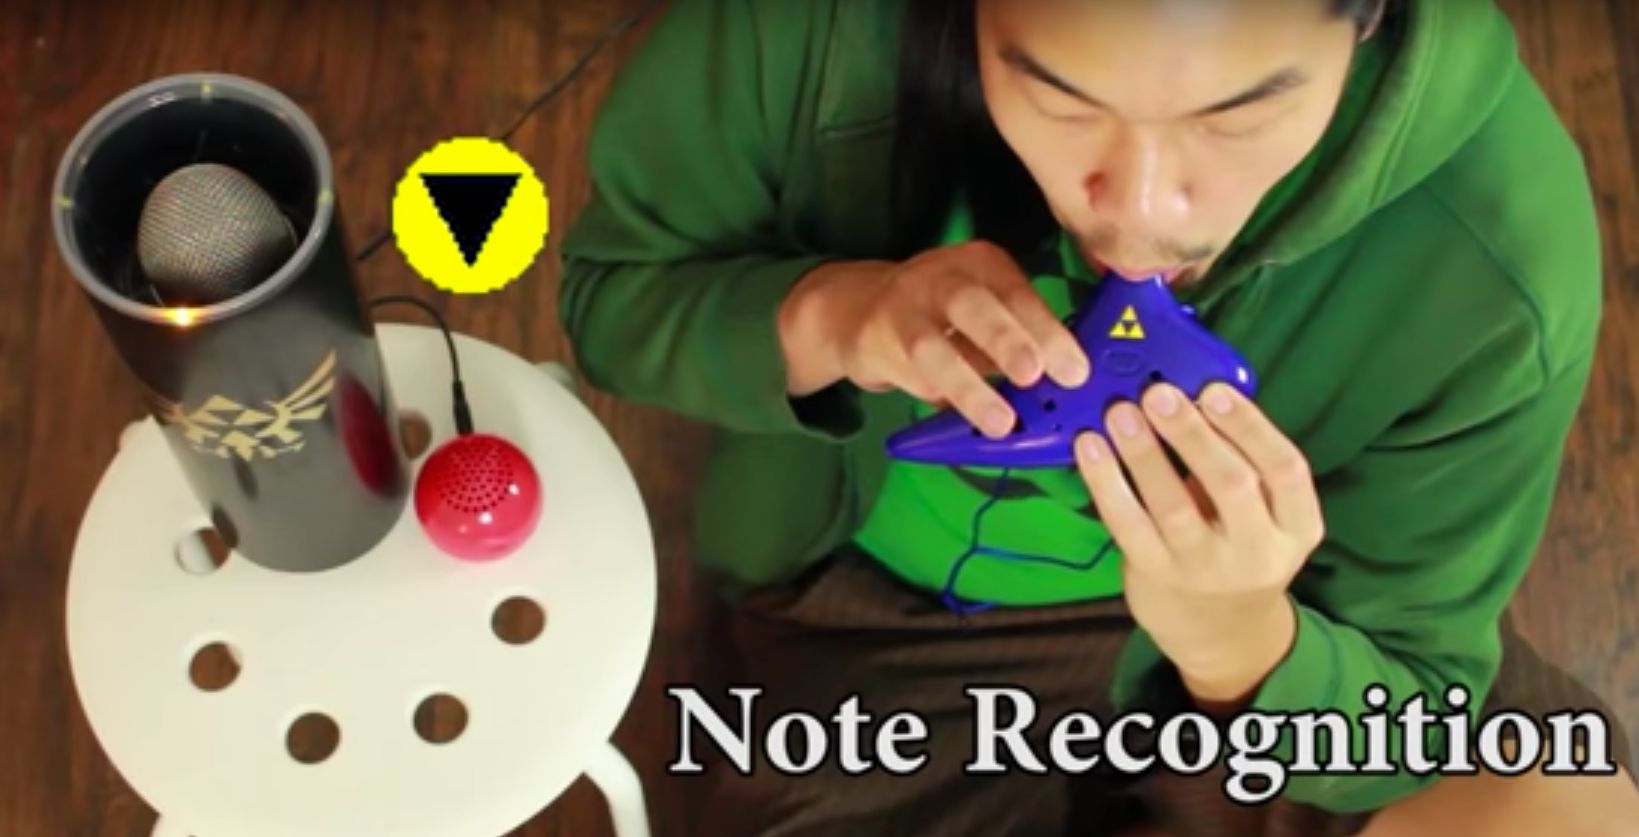 A Zelda Superfan Can Now Control His Entire Home Using An